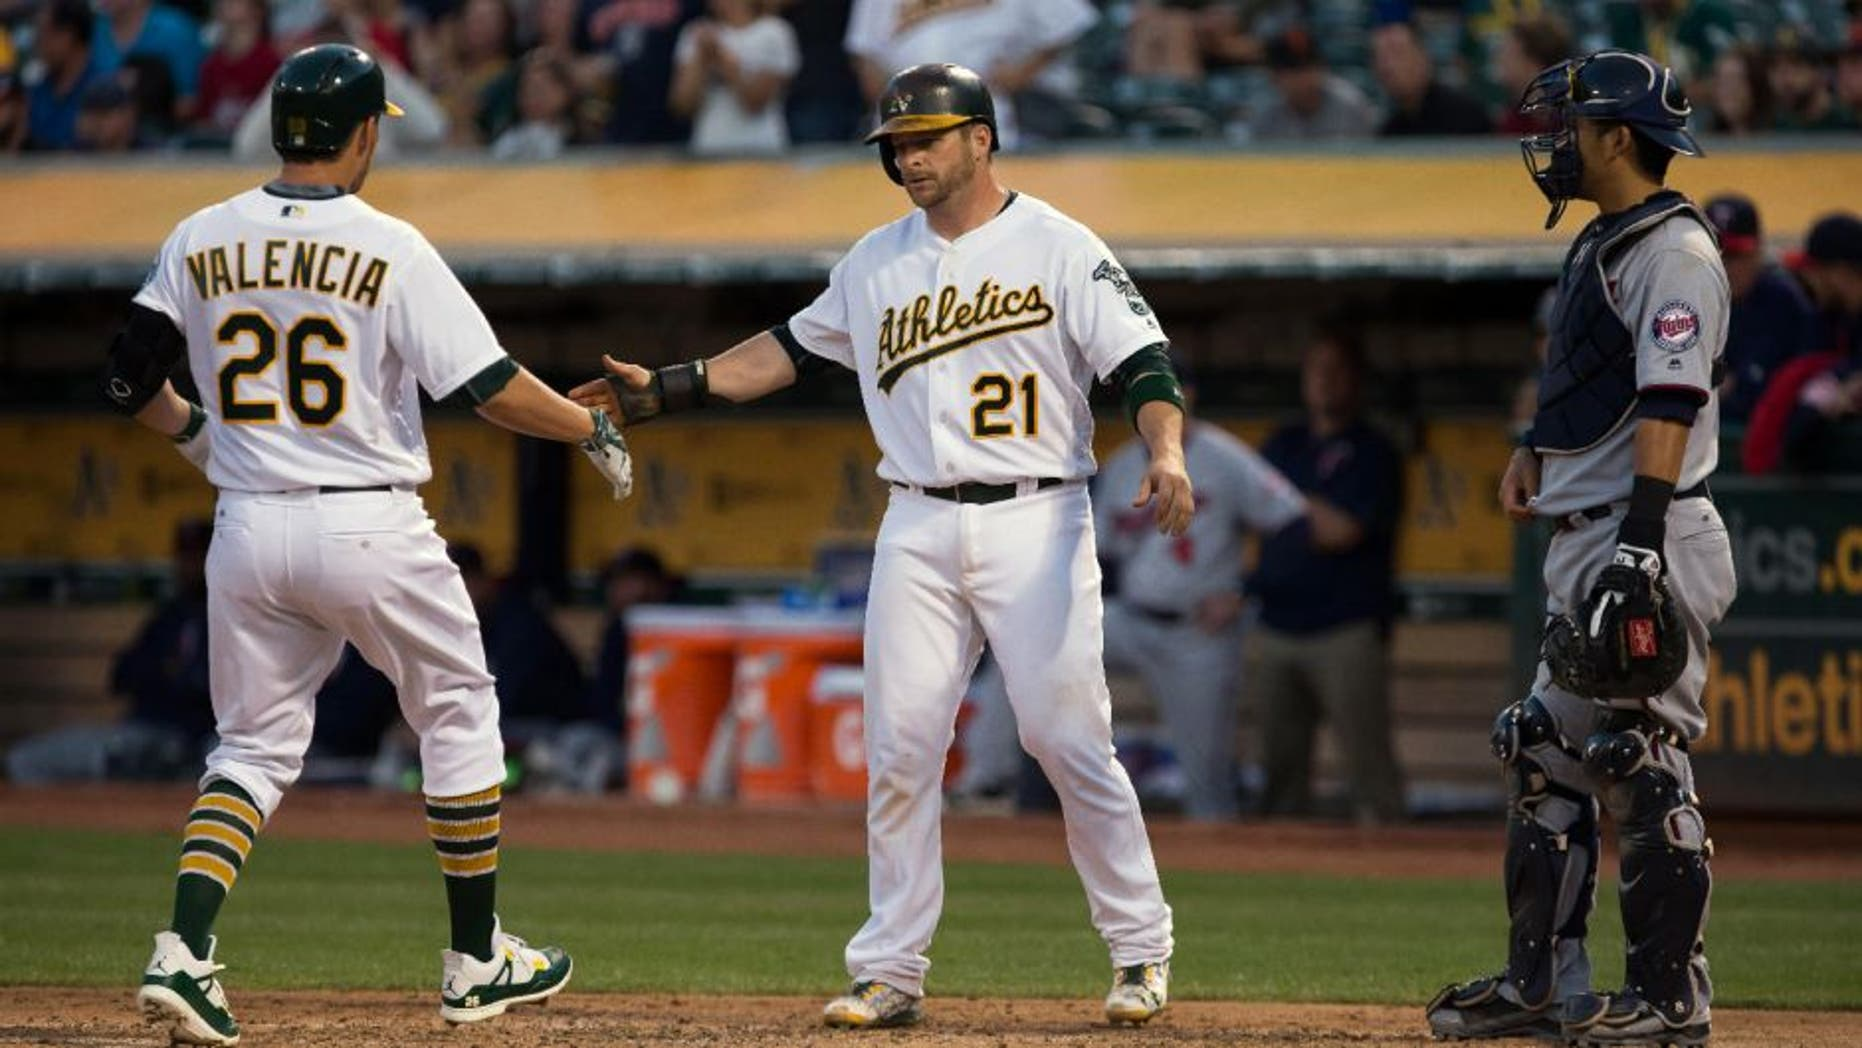 Oakland Athletics third baseman Danny Valencia is greeted by catcher Stephen Vogt after Valencia's two run home run to drive in Vogt as Minnesota Twins catcher Kurt Suzuki looks on.